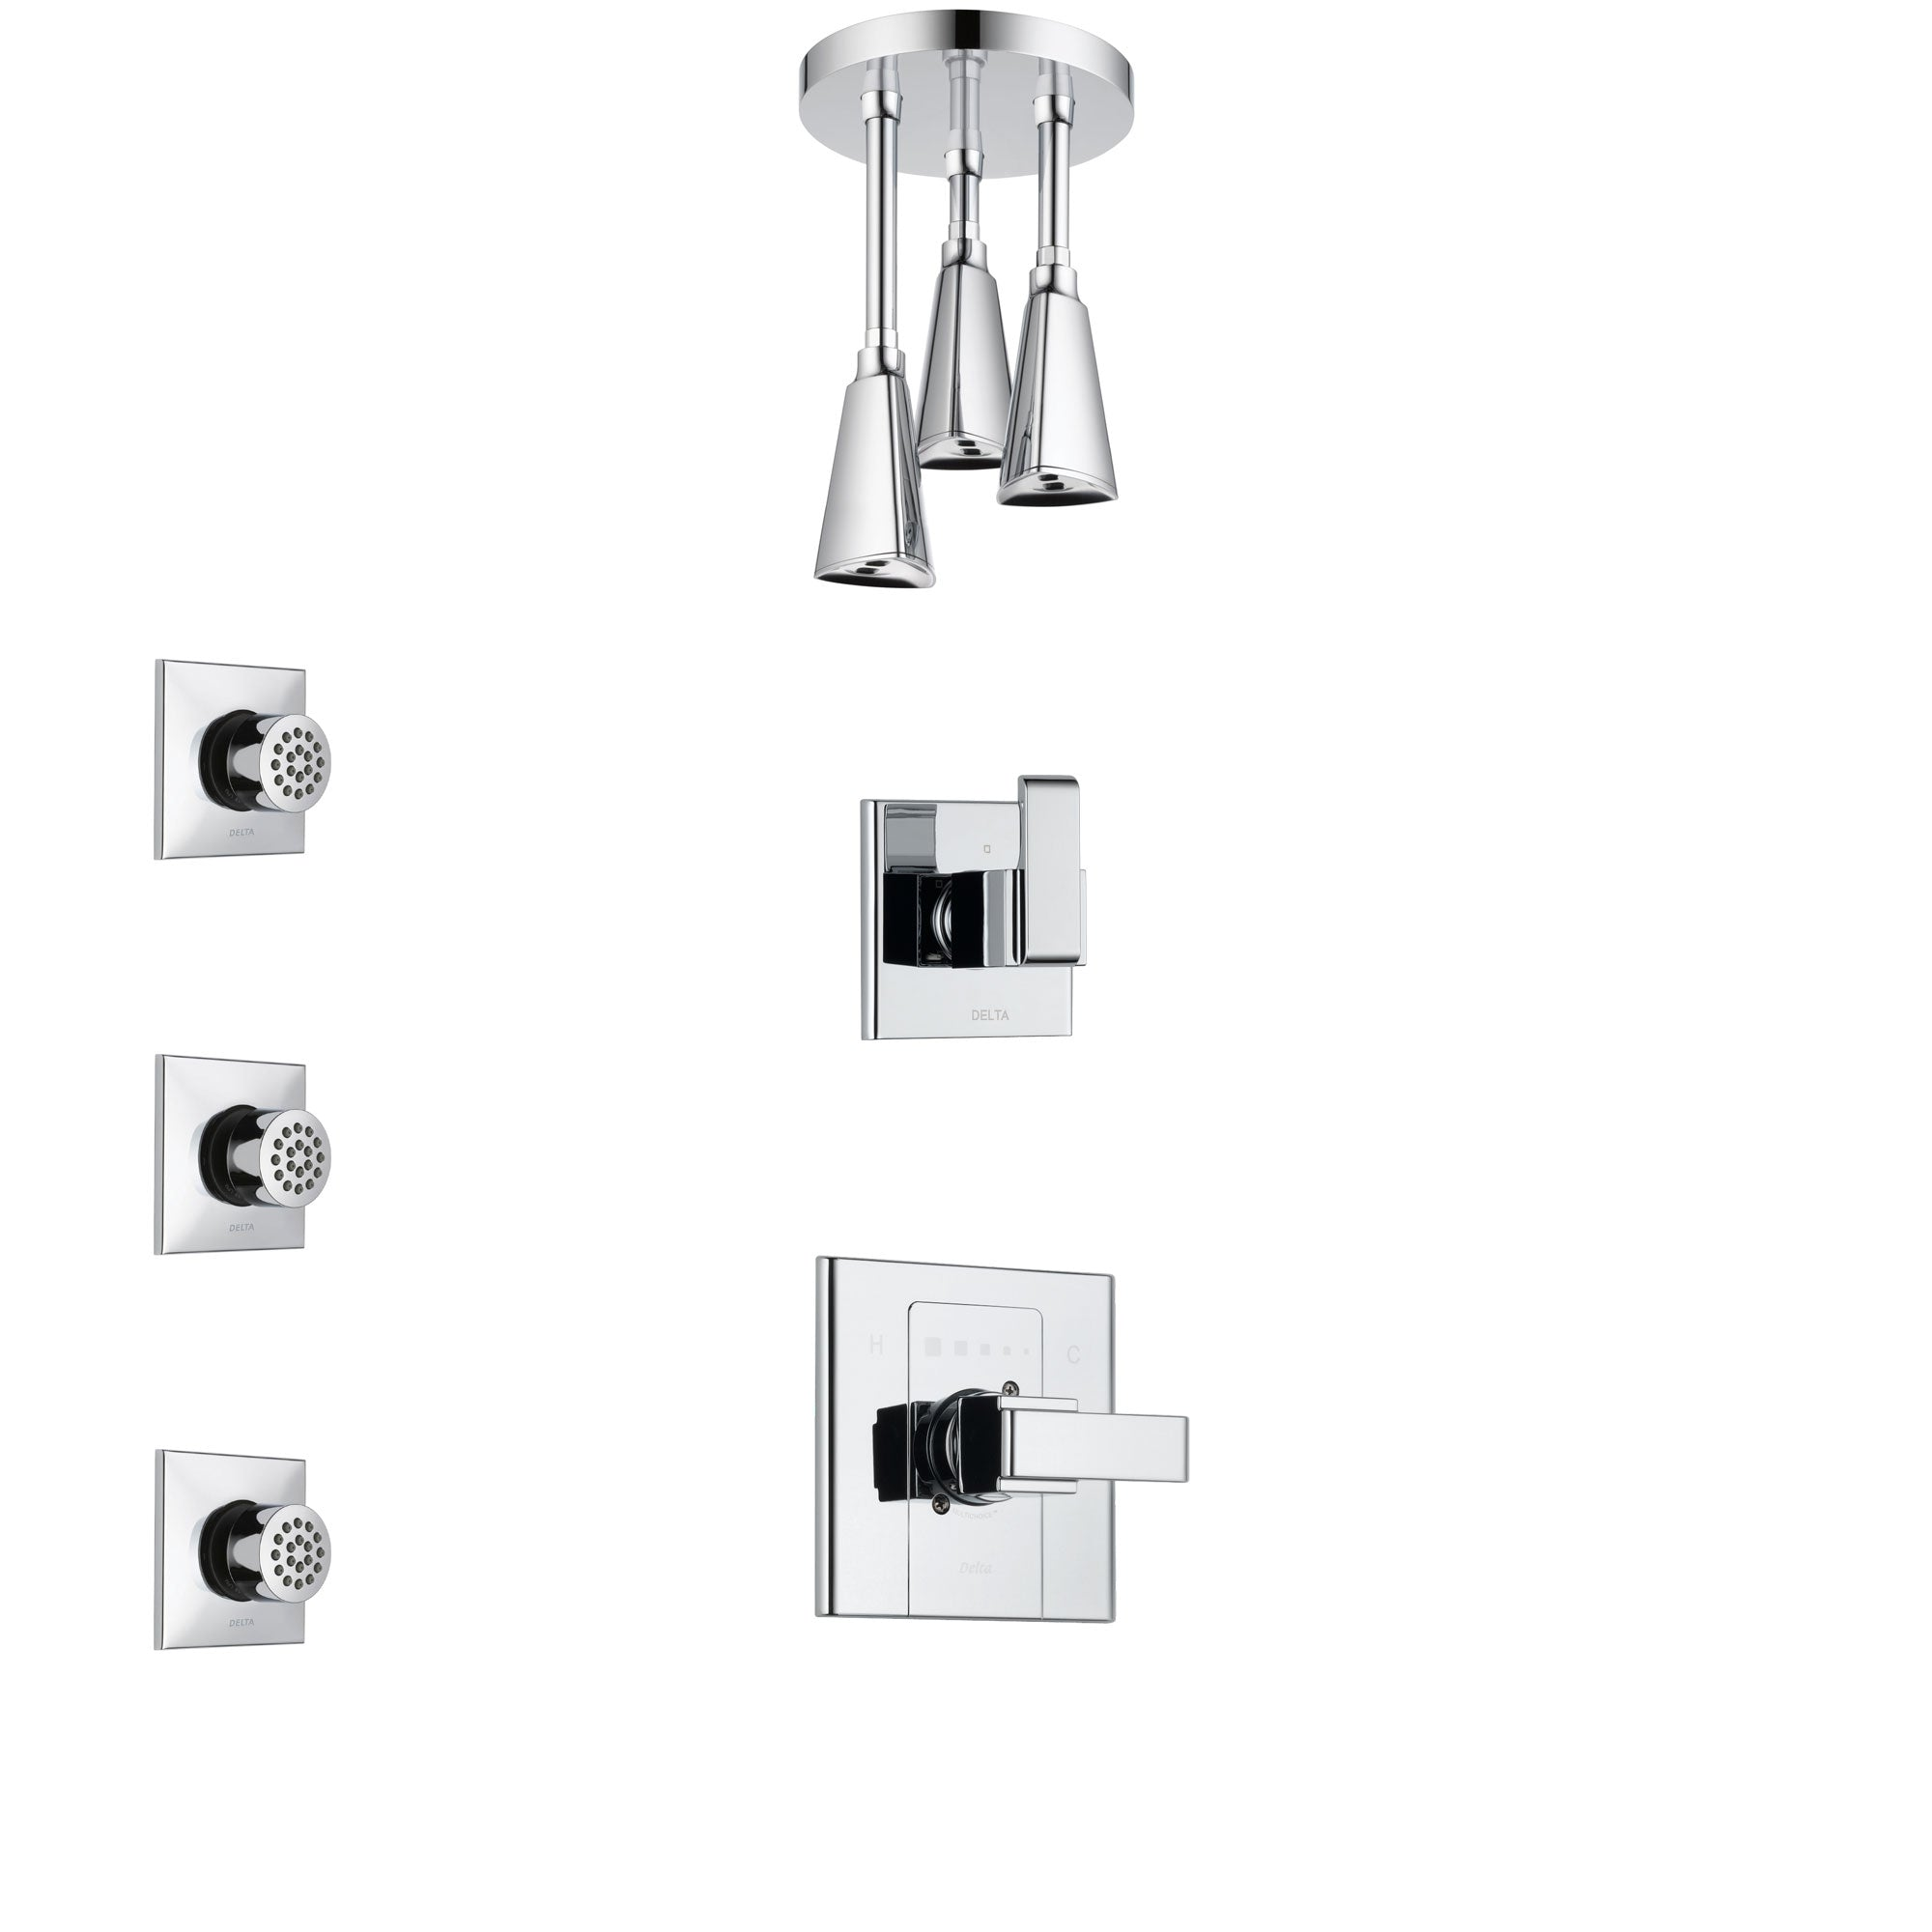 Delta Arzo Chrome Finish Shower System with Control Handle, 3-Setting Diverter, Ceiling Mount Showerhead, and 3 Body Sprays SS14863